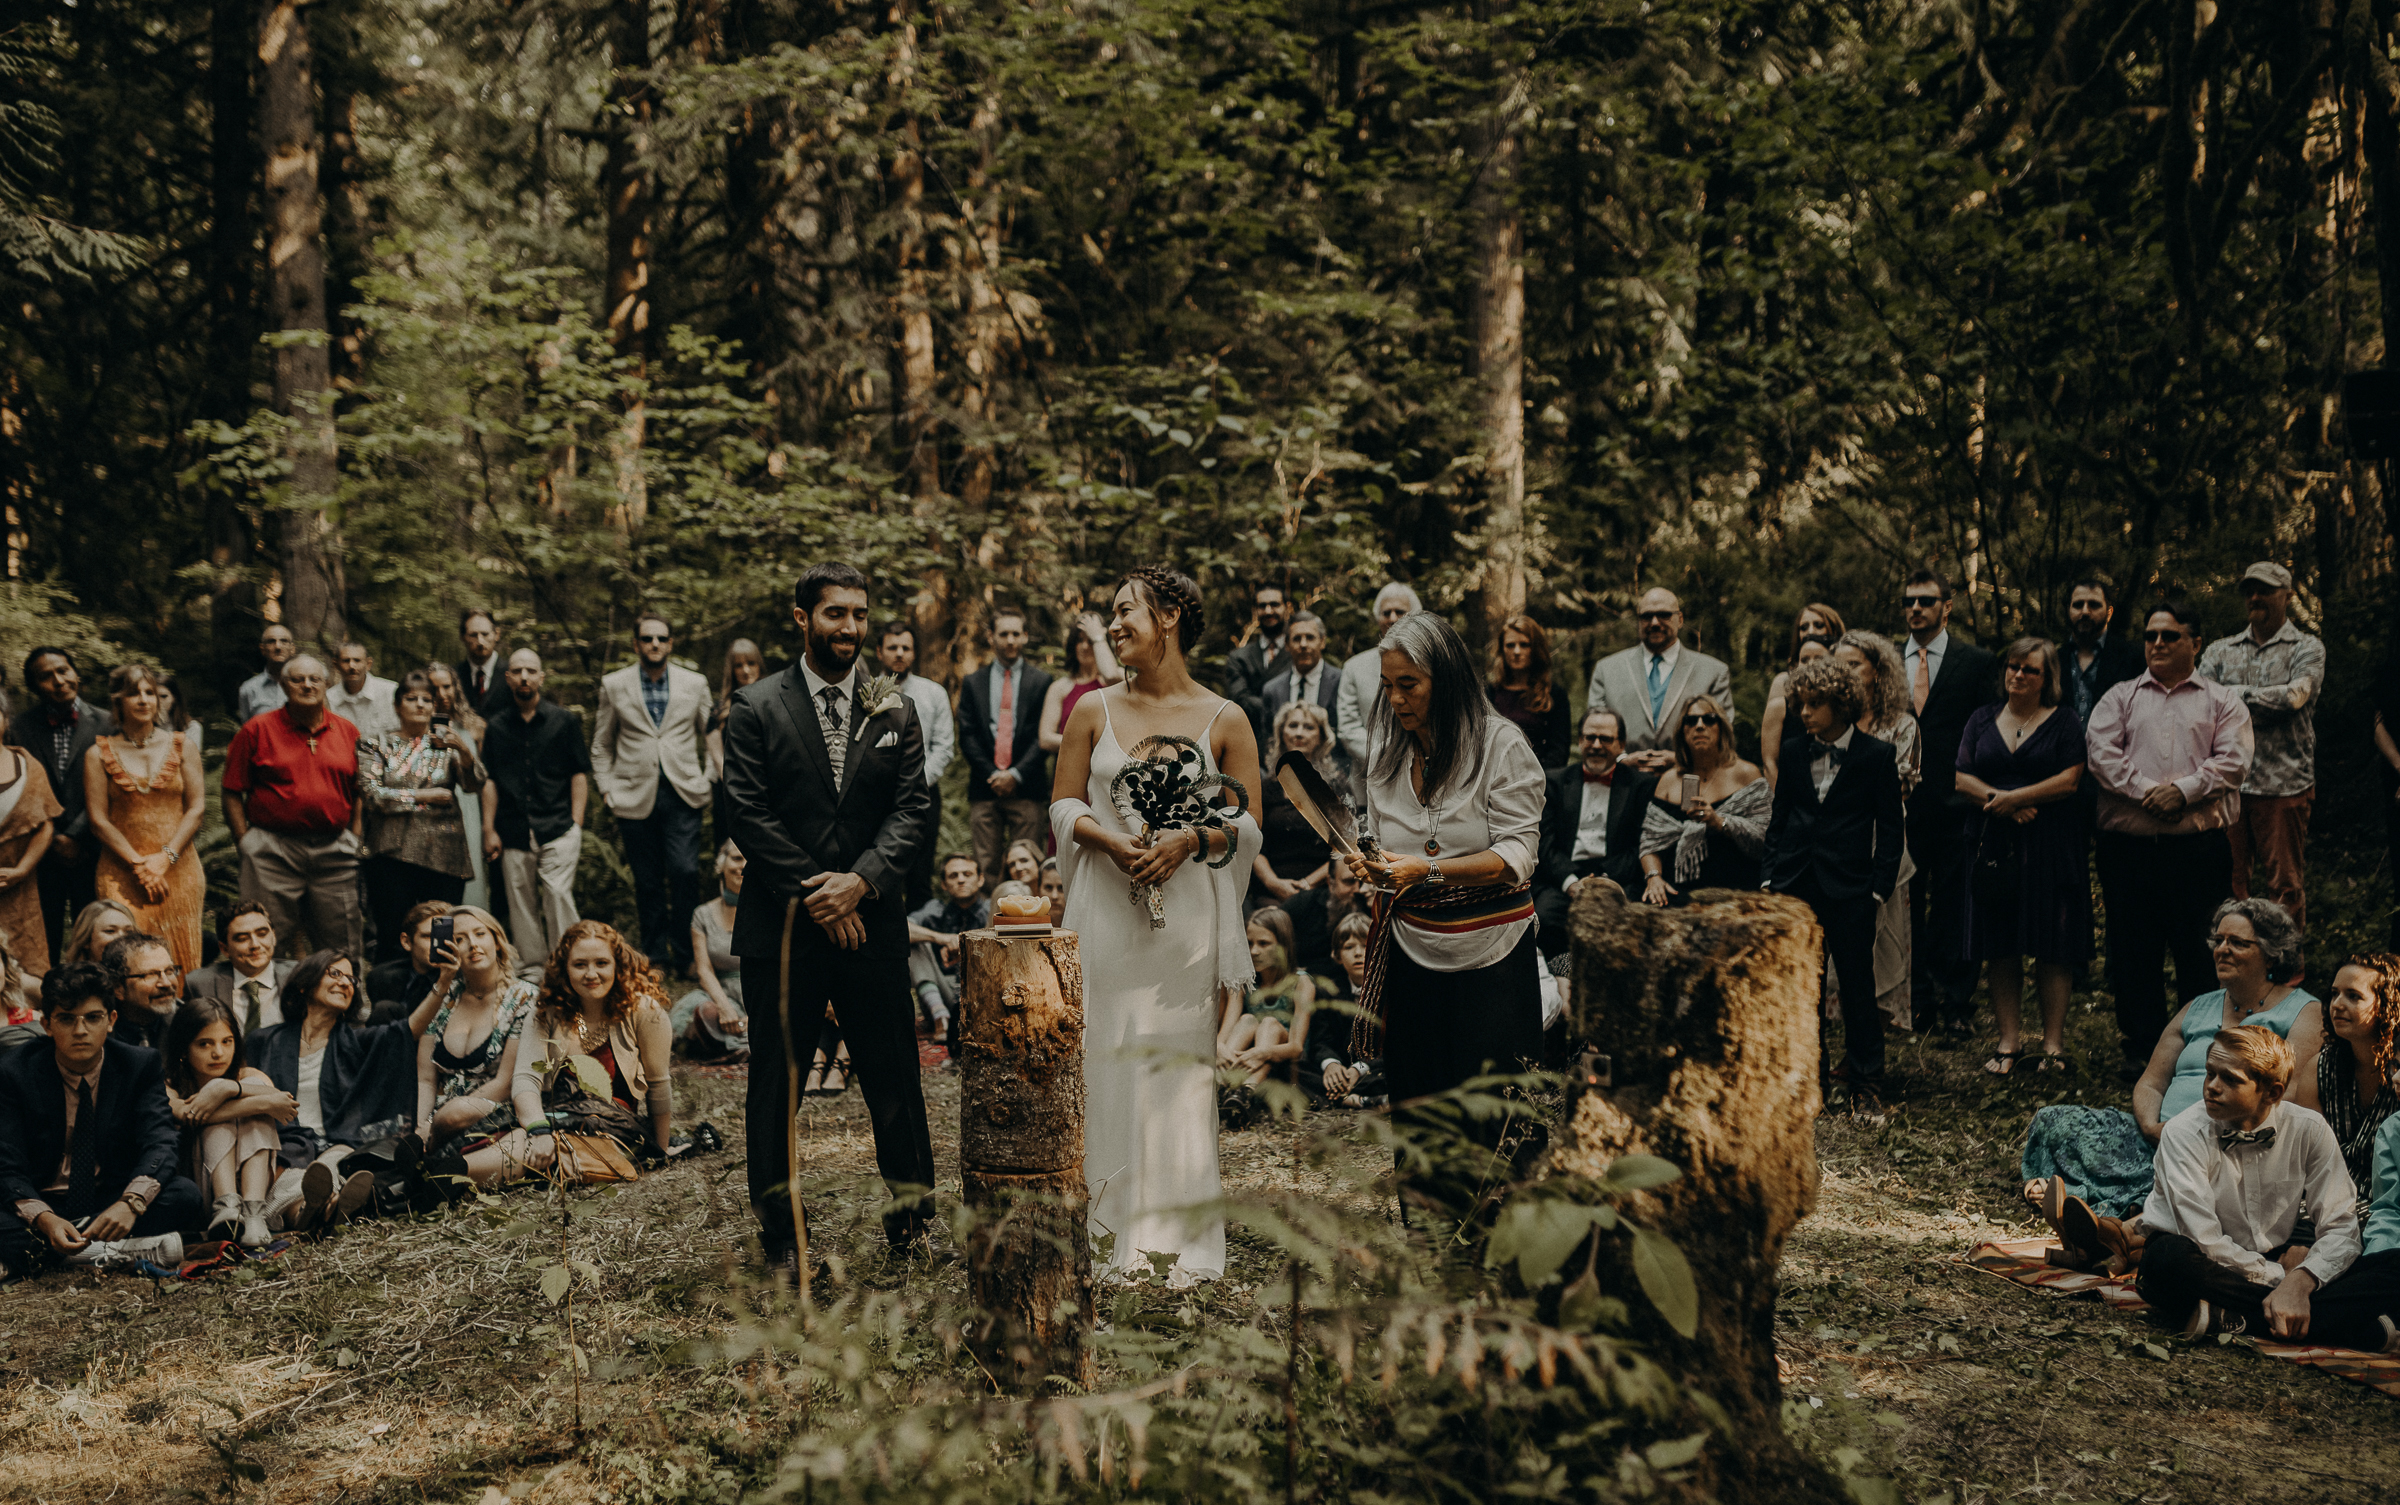 Isaiah + Taylor Photography - Camp Colton Wedding, Los Angeles Wedding Photographer-063.jpg